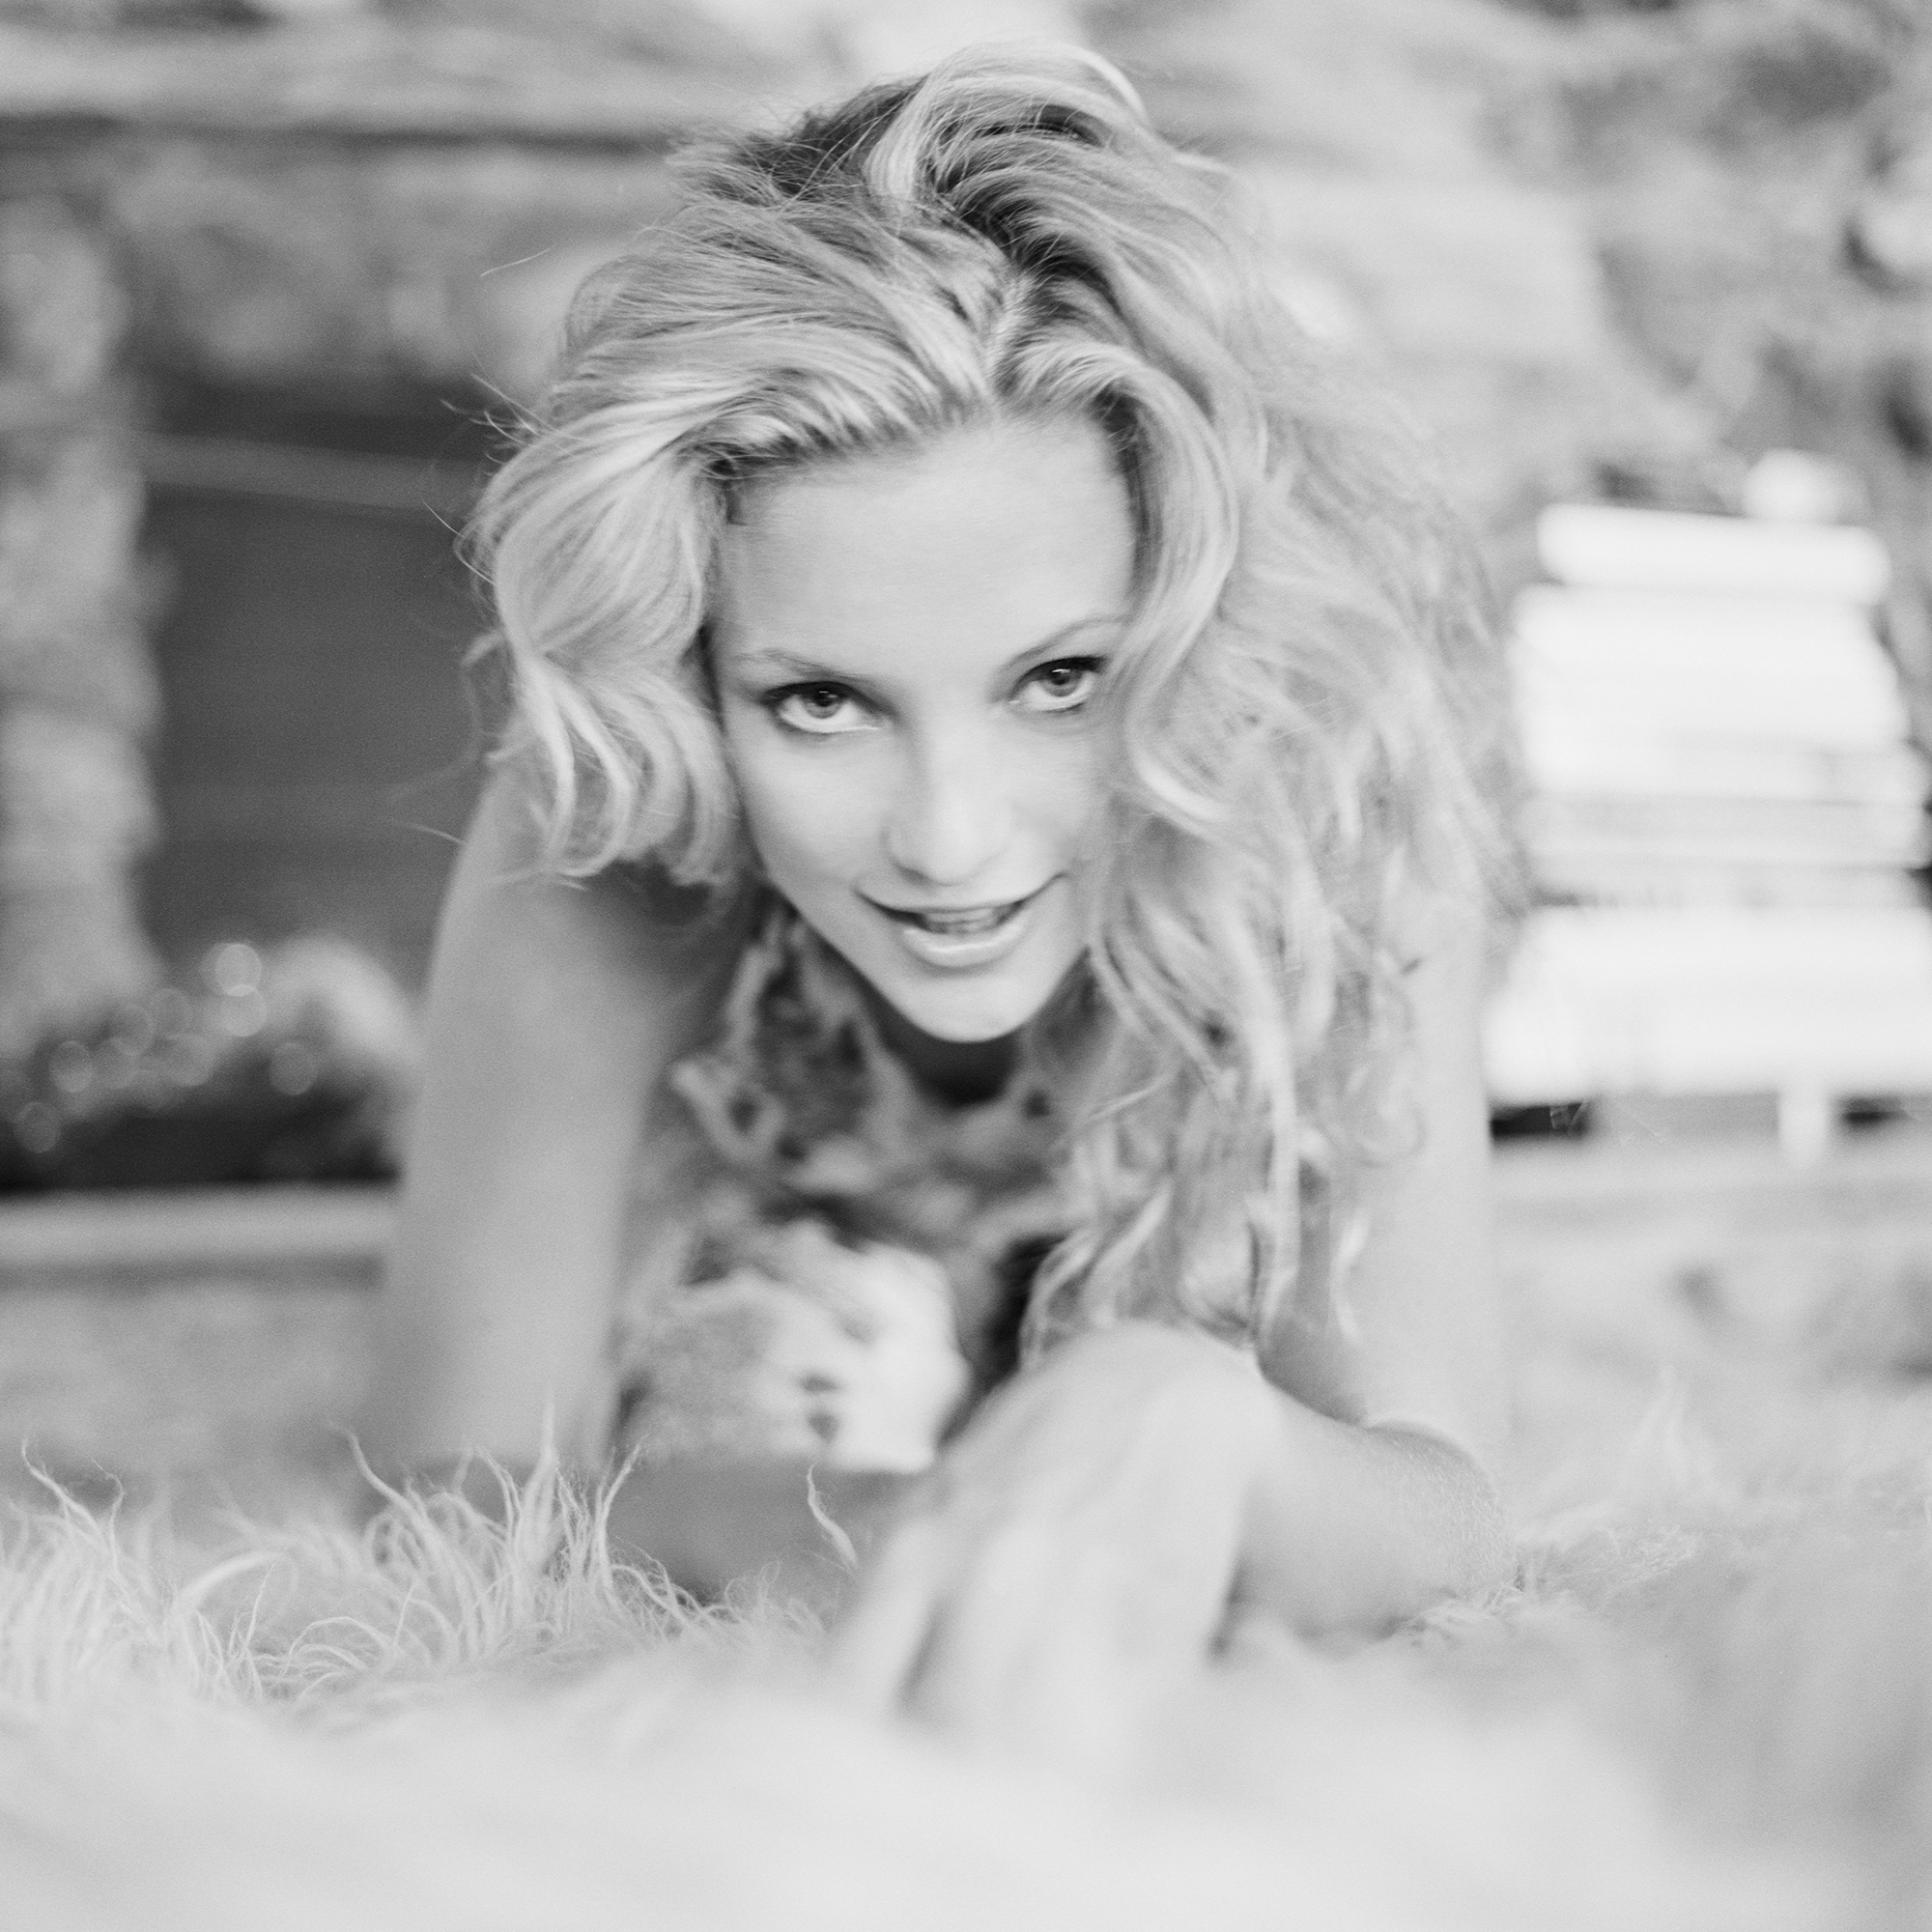 """""""Be like a tiger kitten Kate"""" Kate Hudson photographed by Patrik Andersson in Silverlake Los Angeles"""